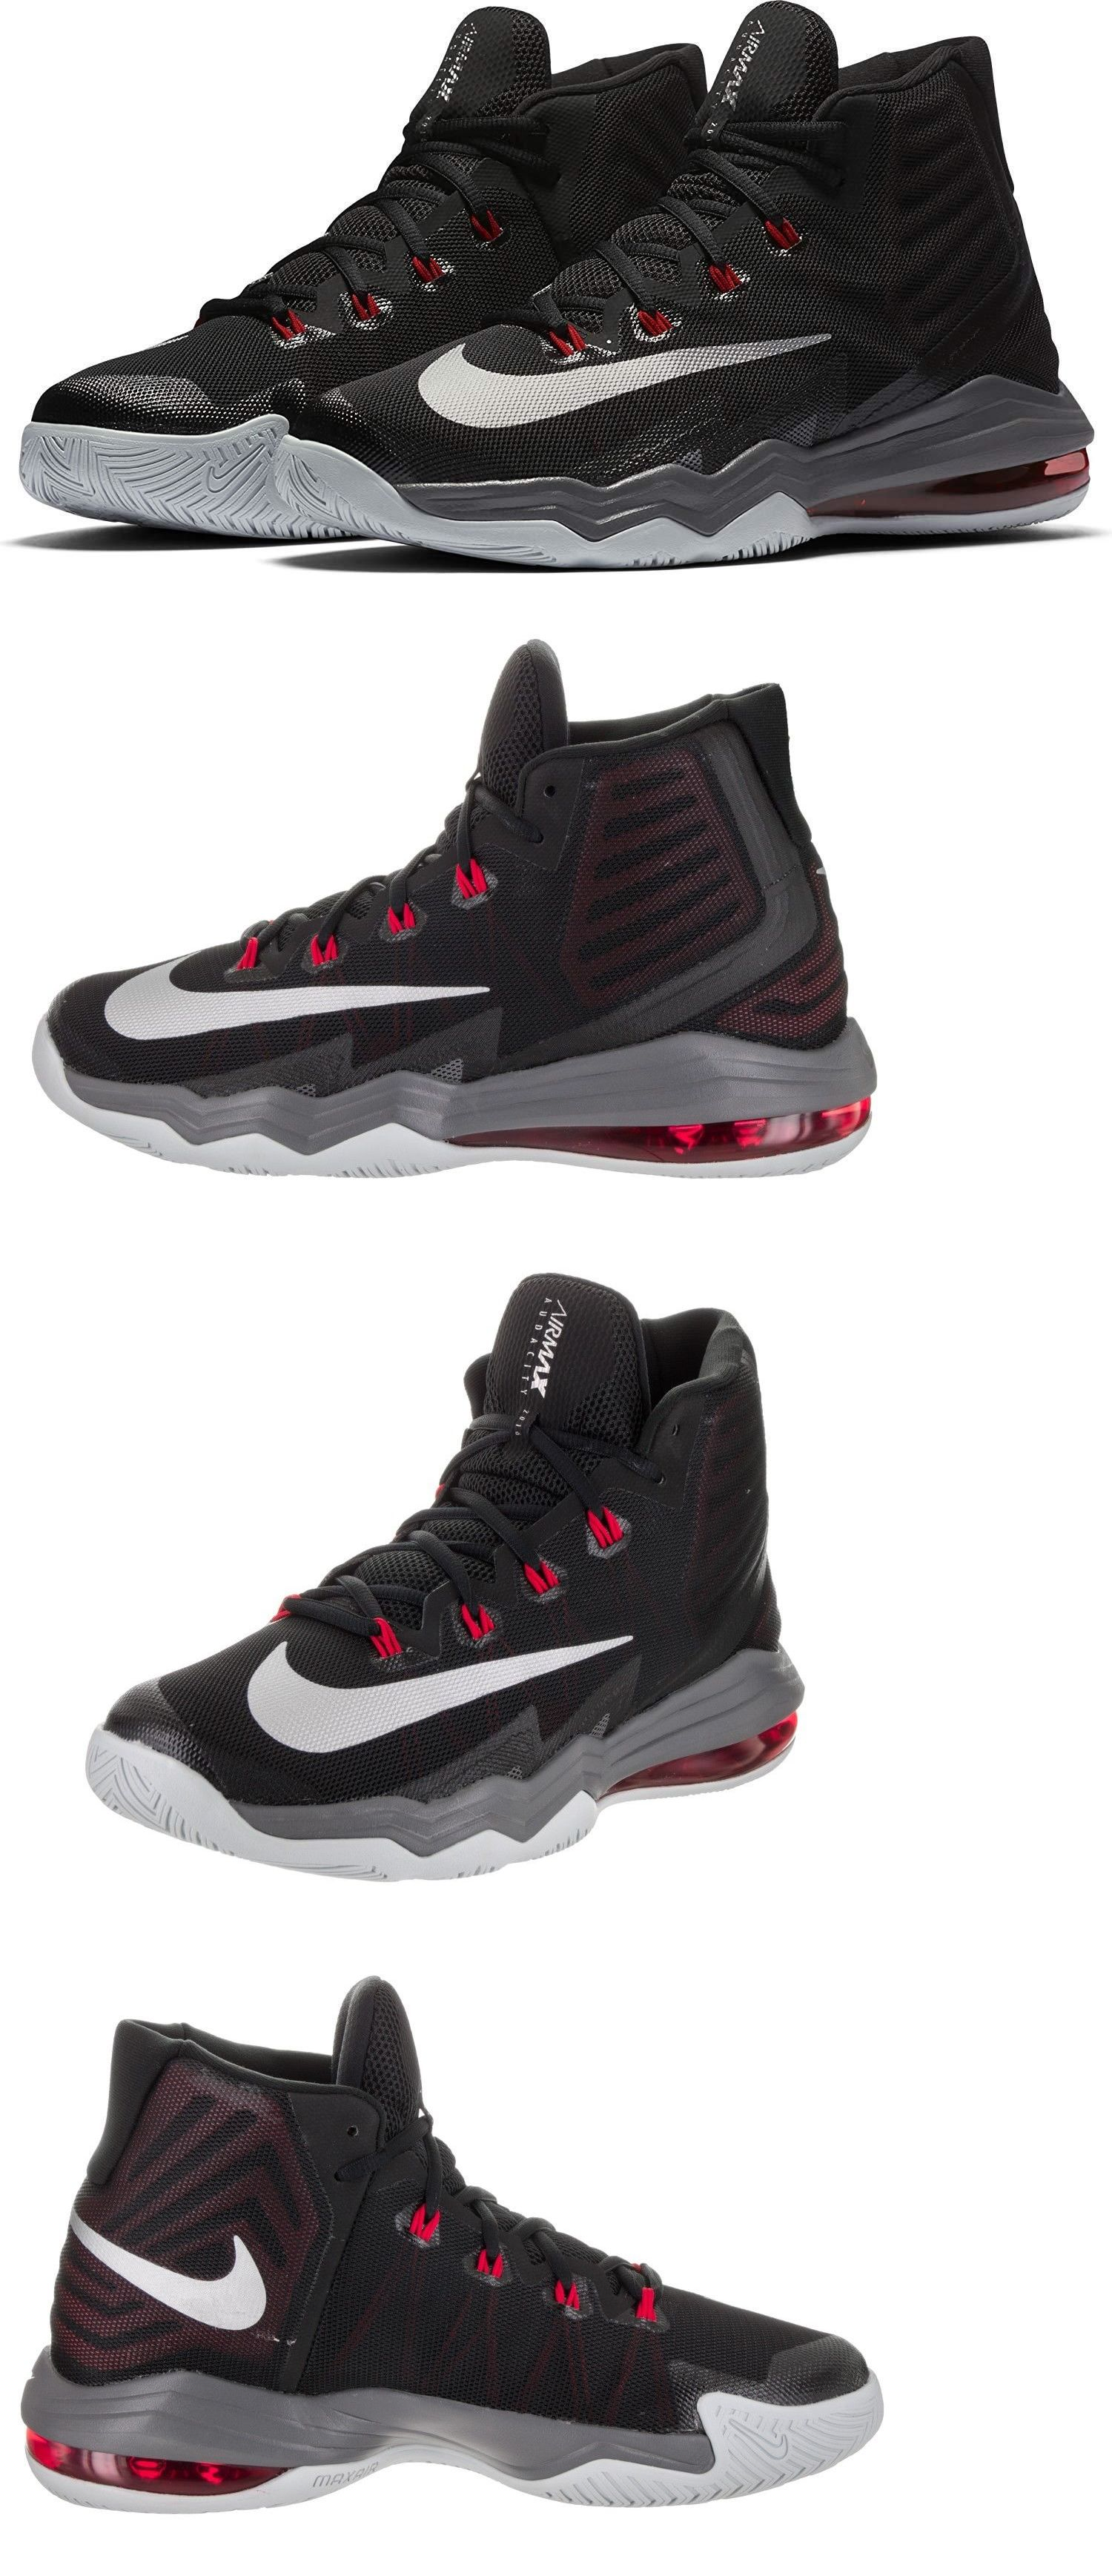 cd4bbcb45b0953 ... where to buy clothing shoes and accessories 158963 nike air max  audacity men s basketball shoes